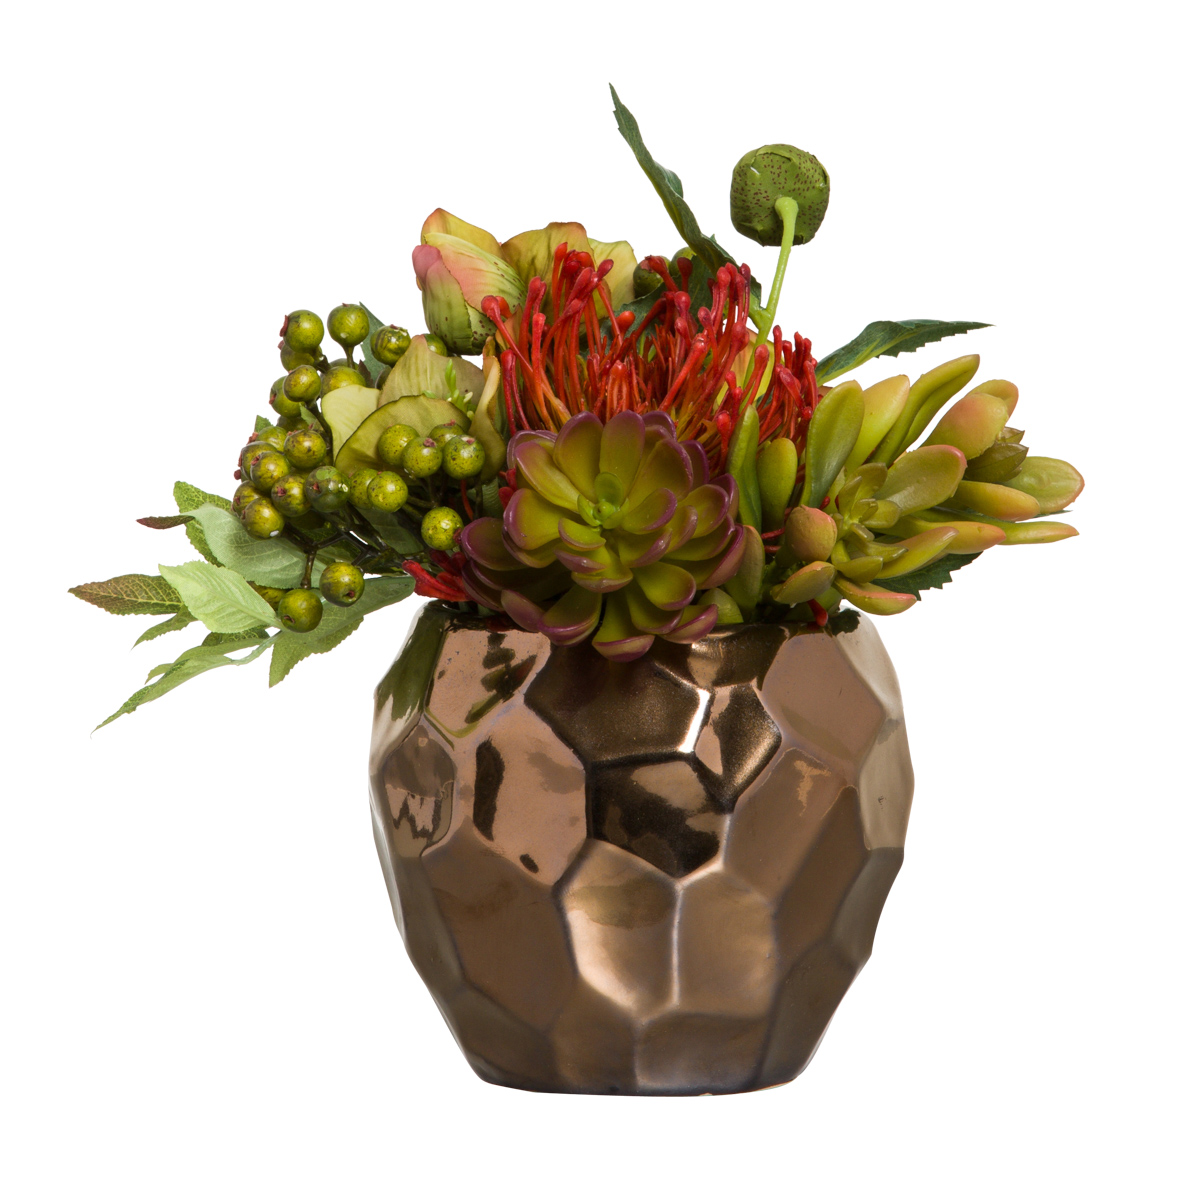 ASST PROTEA/SUCCULENT IN COPPER DRIP POT